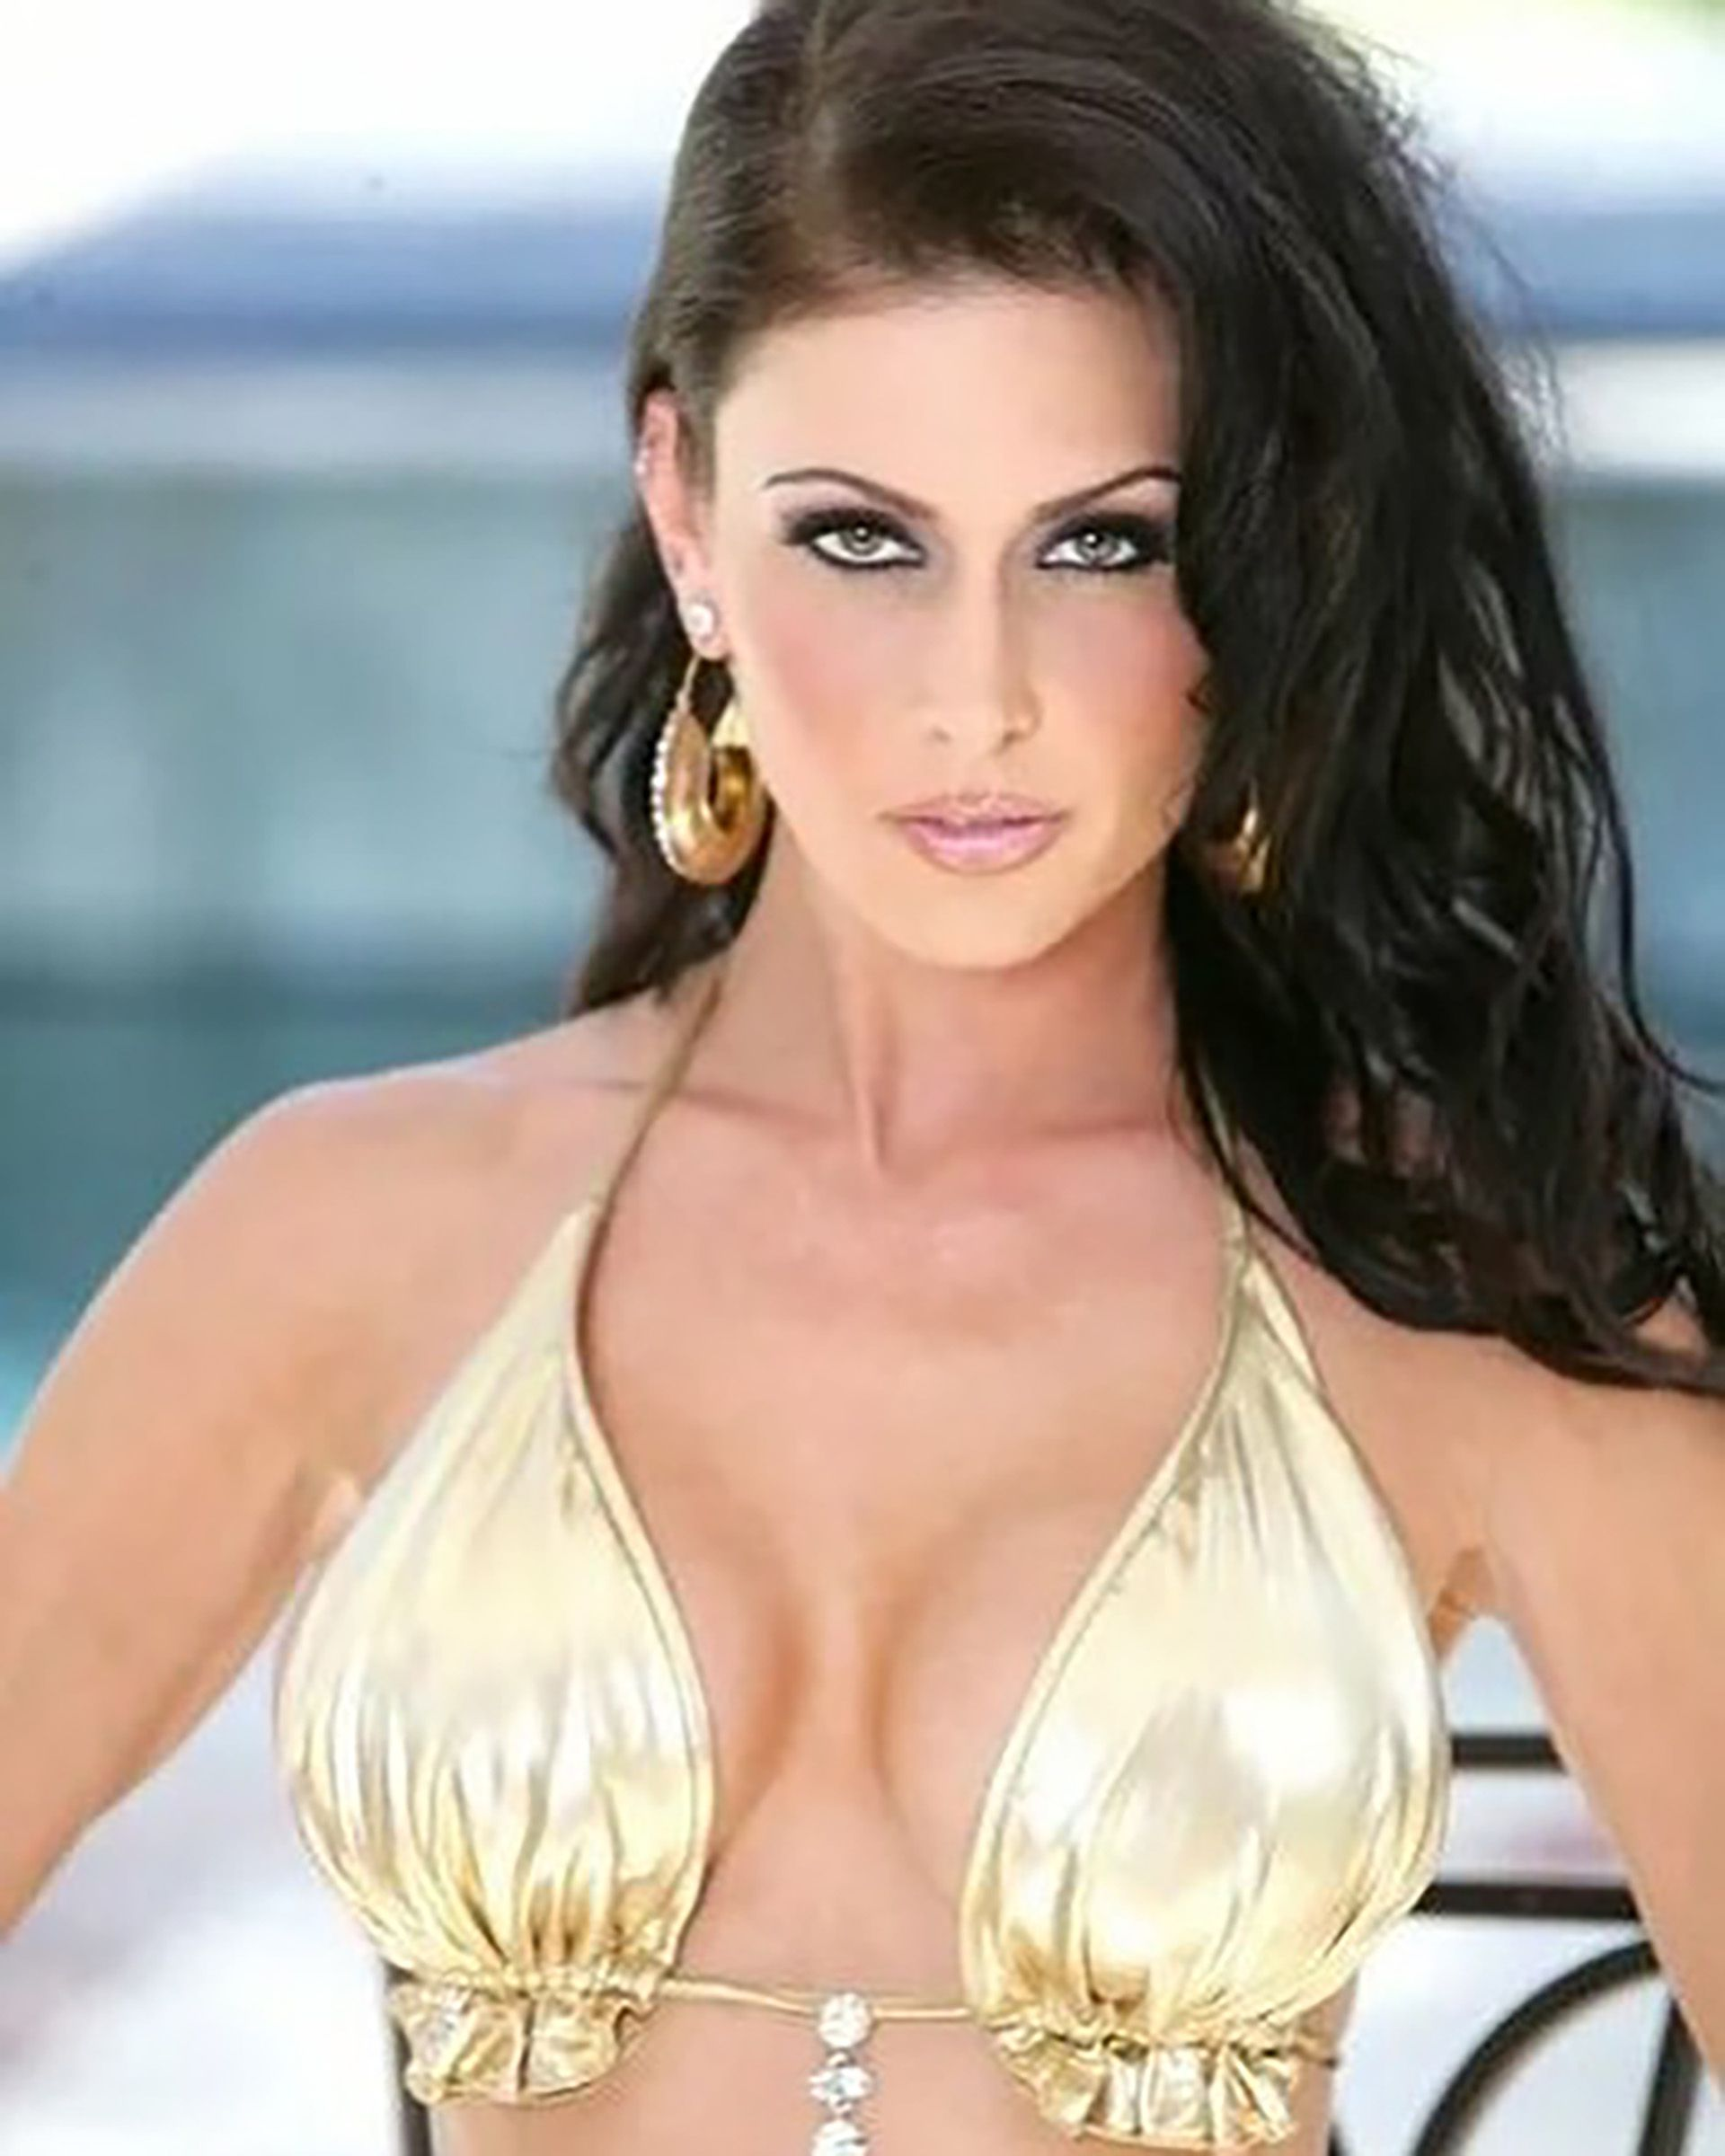 Jessica Jaymes Images photo 2